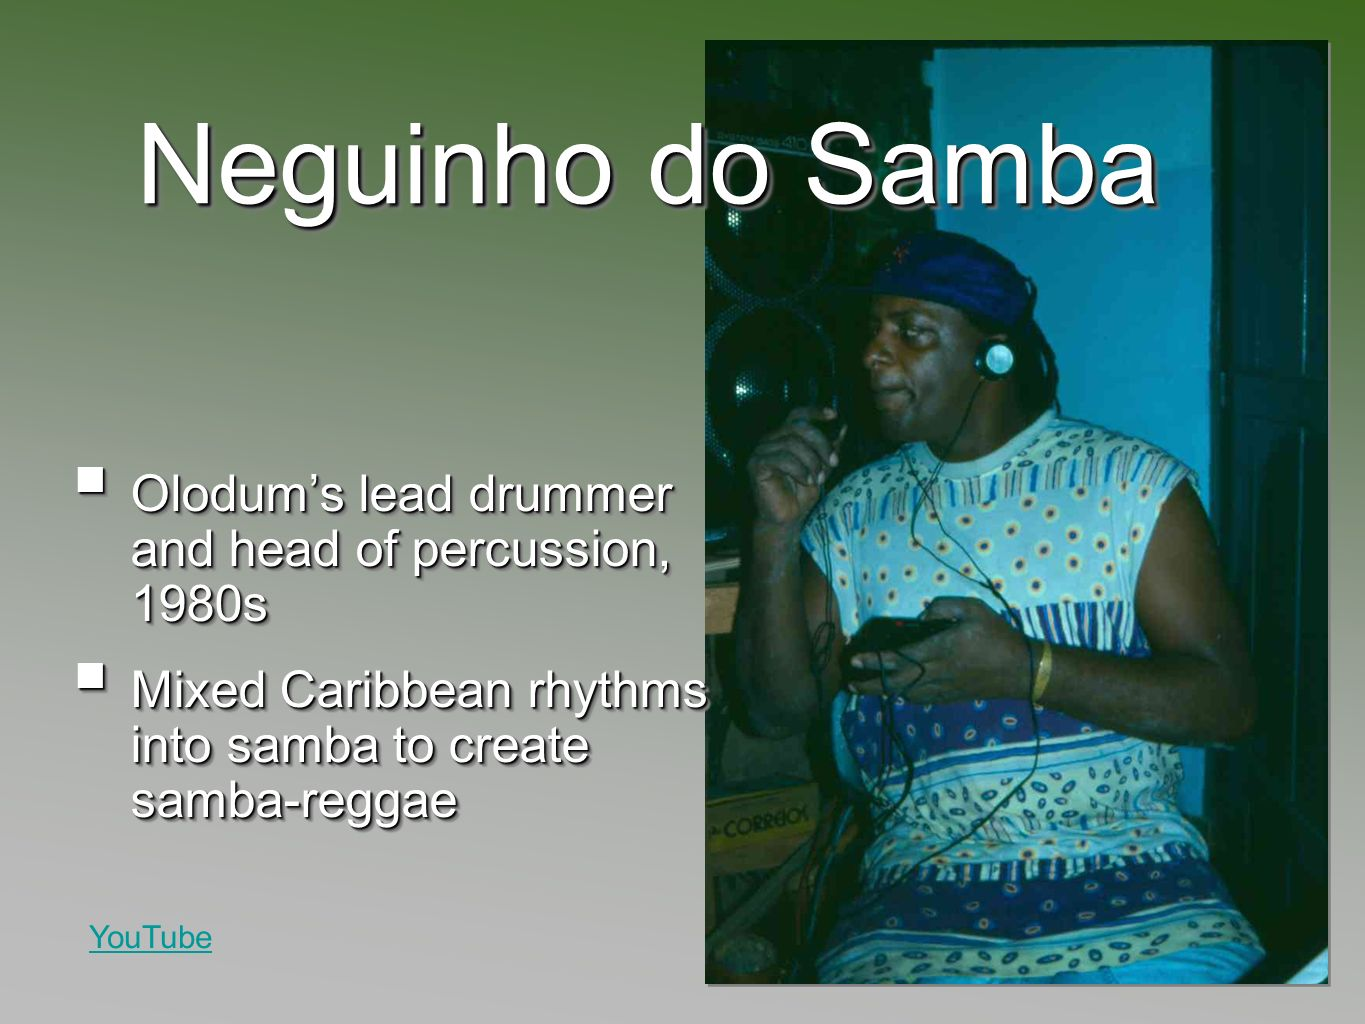 Neguinho do Samba Olodums lead drummer and head of percussion, 1980s Olodums lead drummer and head of percussion, 1980s Mixed Caribbean rhythms into samba to create samba-reggae Mixed Caribbean rhythms into samba to create samba-reggae Olodums lead drummer and head of percussion, 1980s Olodums lead drummer and head of percussion, 1980s Mixed Caribbean rhythms into samba to create samba-reggae Mixed Caribbean rhythms into samba to create samba-reggae YouTube